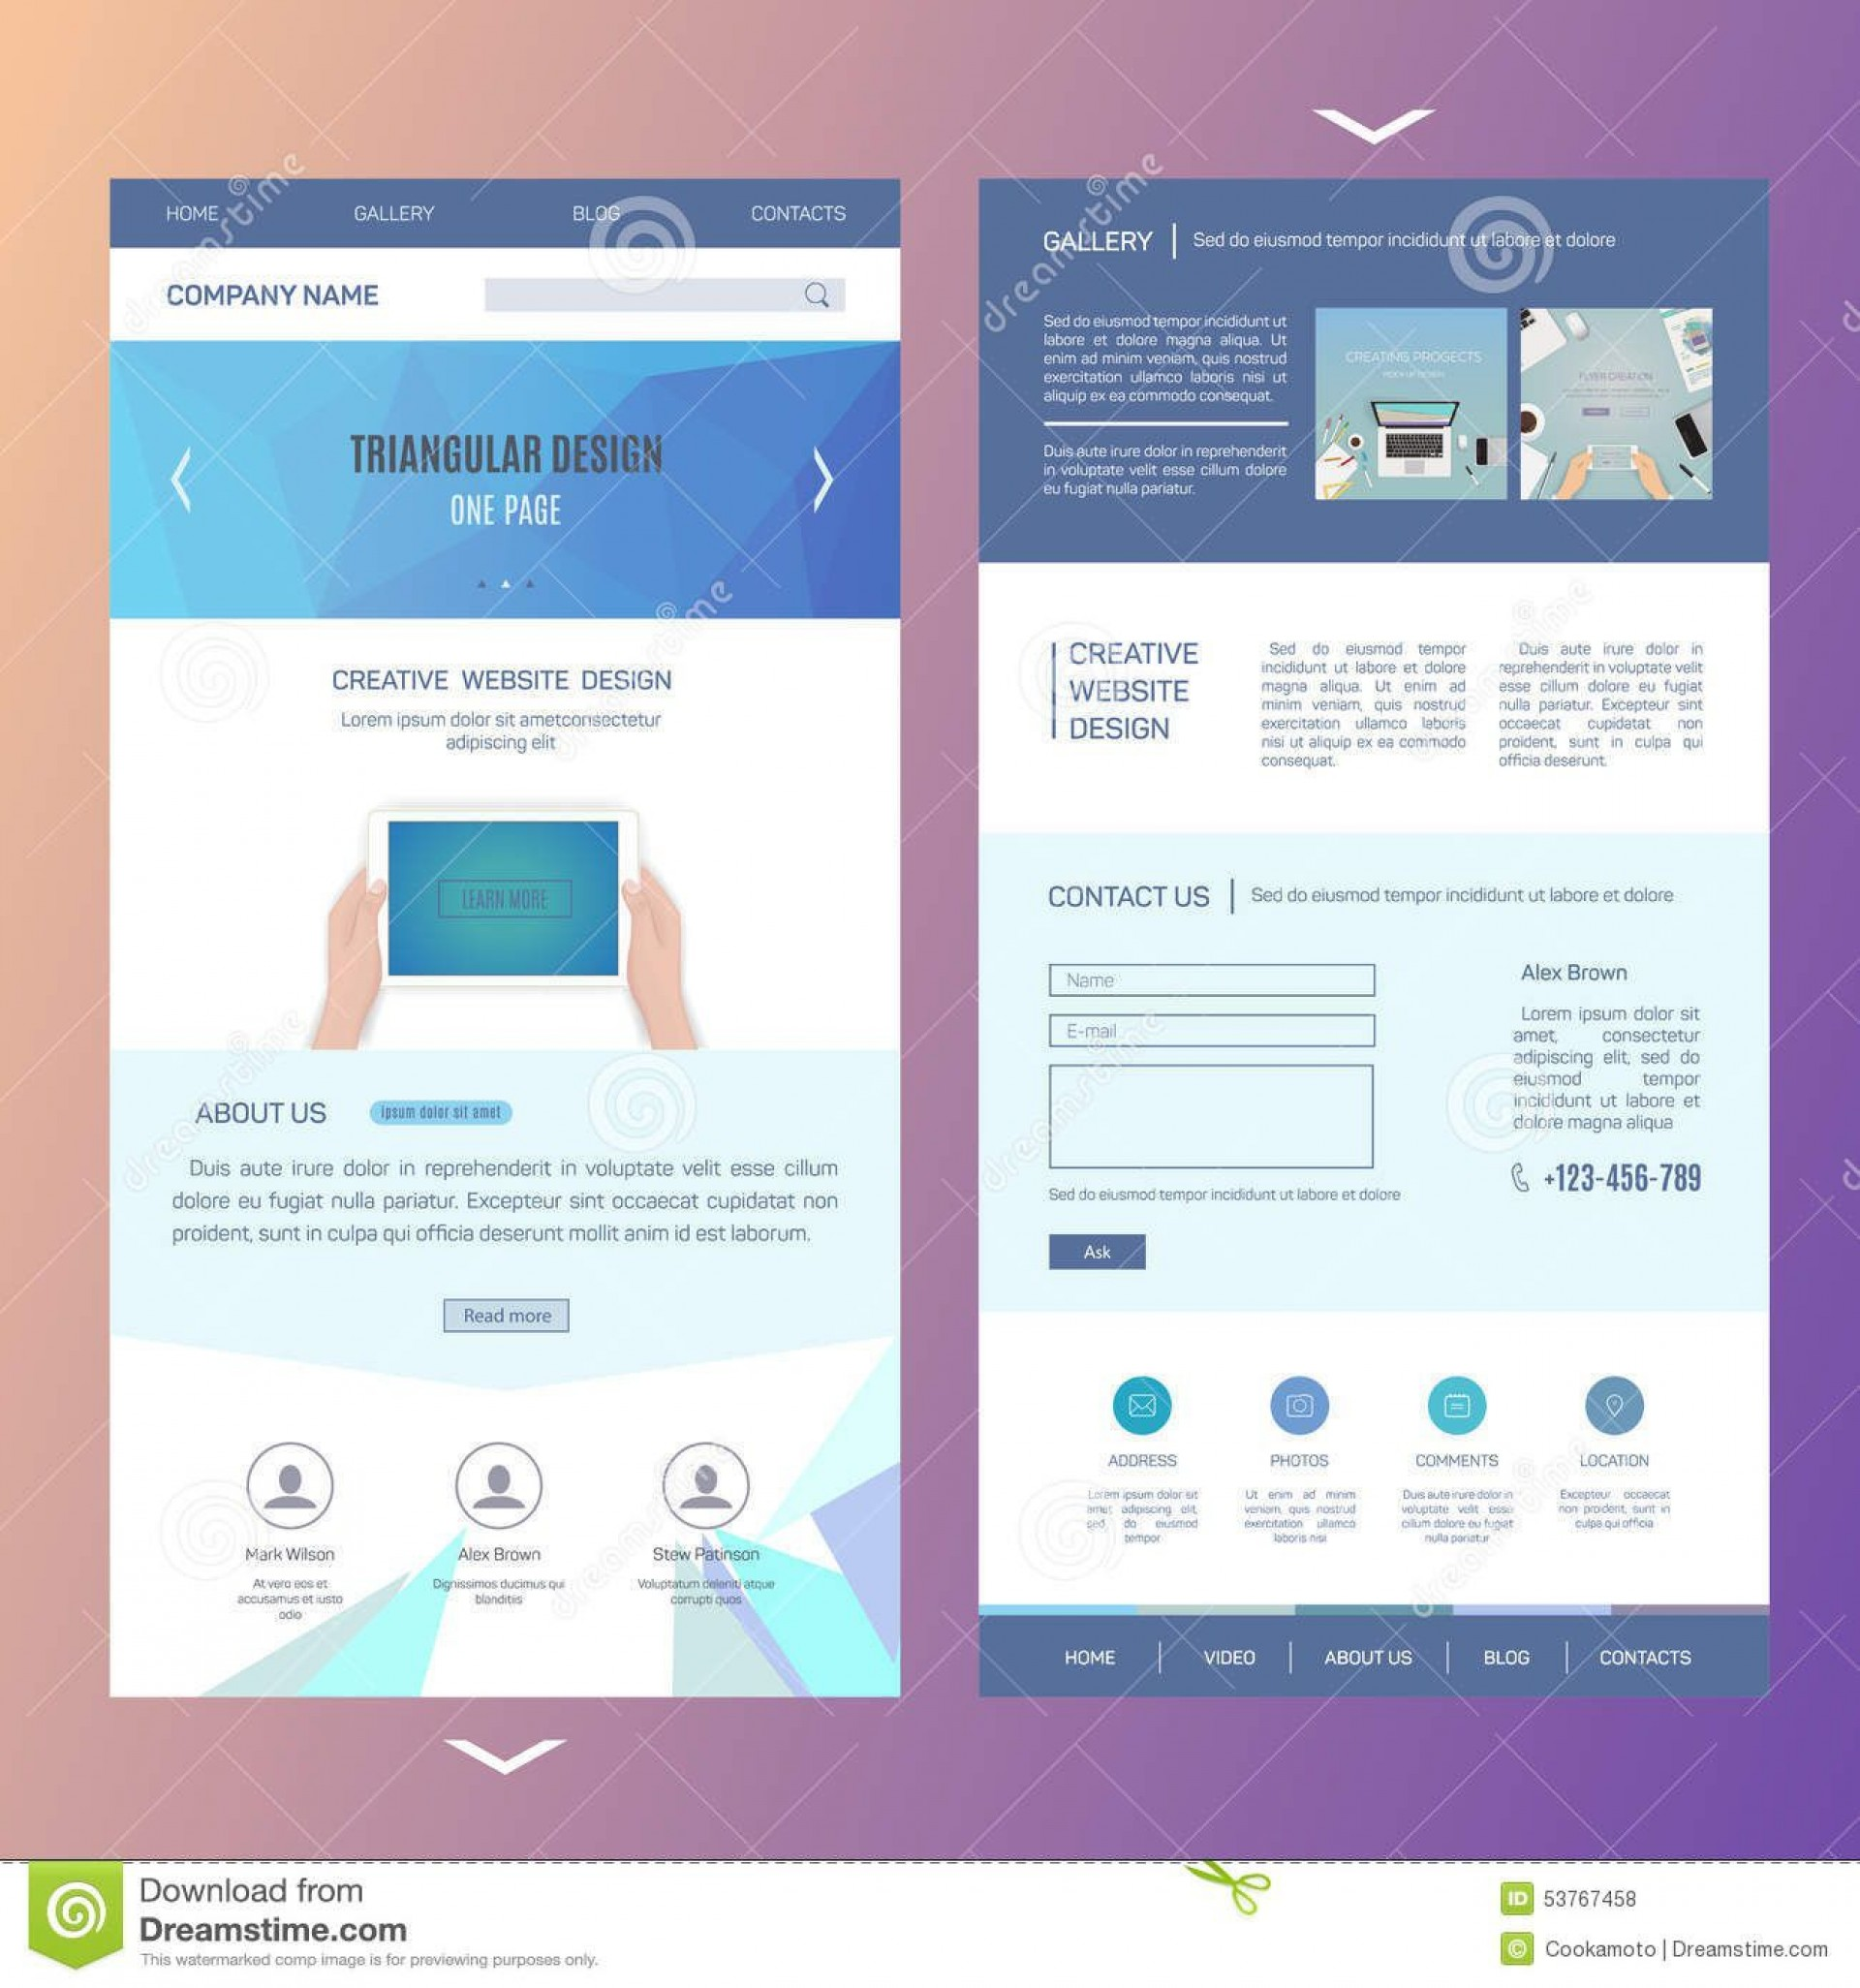 006 Rare Creative One Page Website Template Free Download High Definition 1920